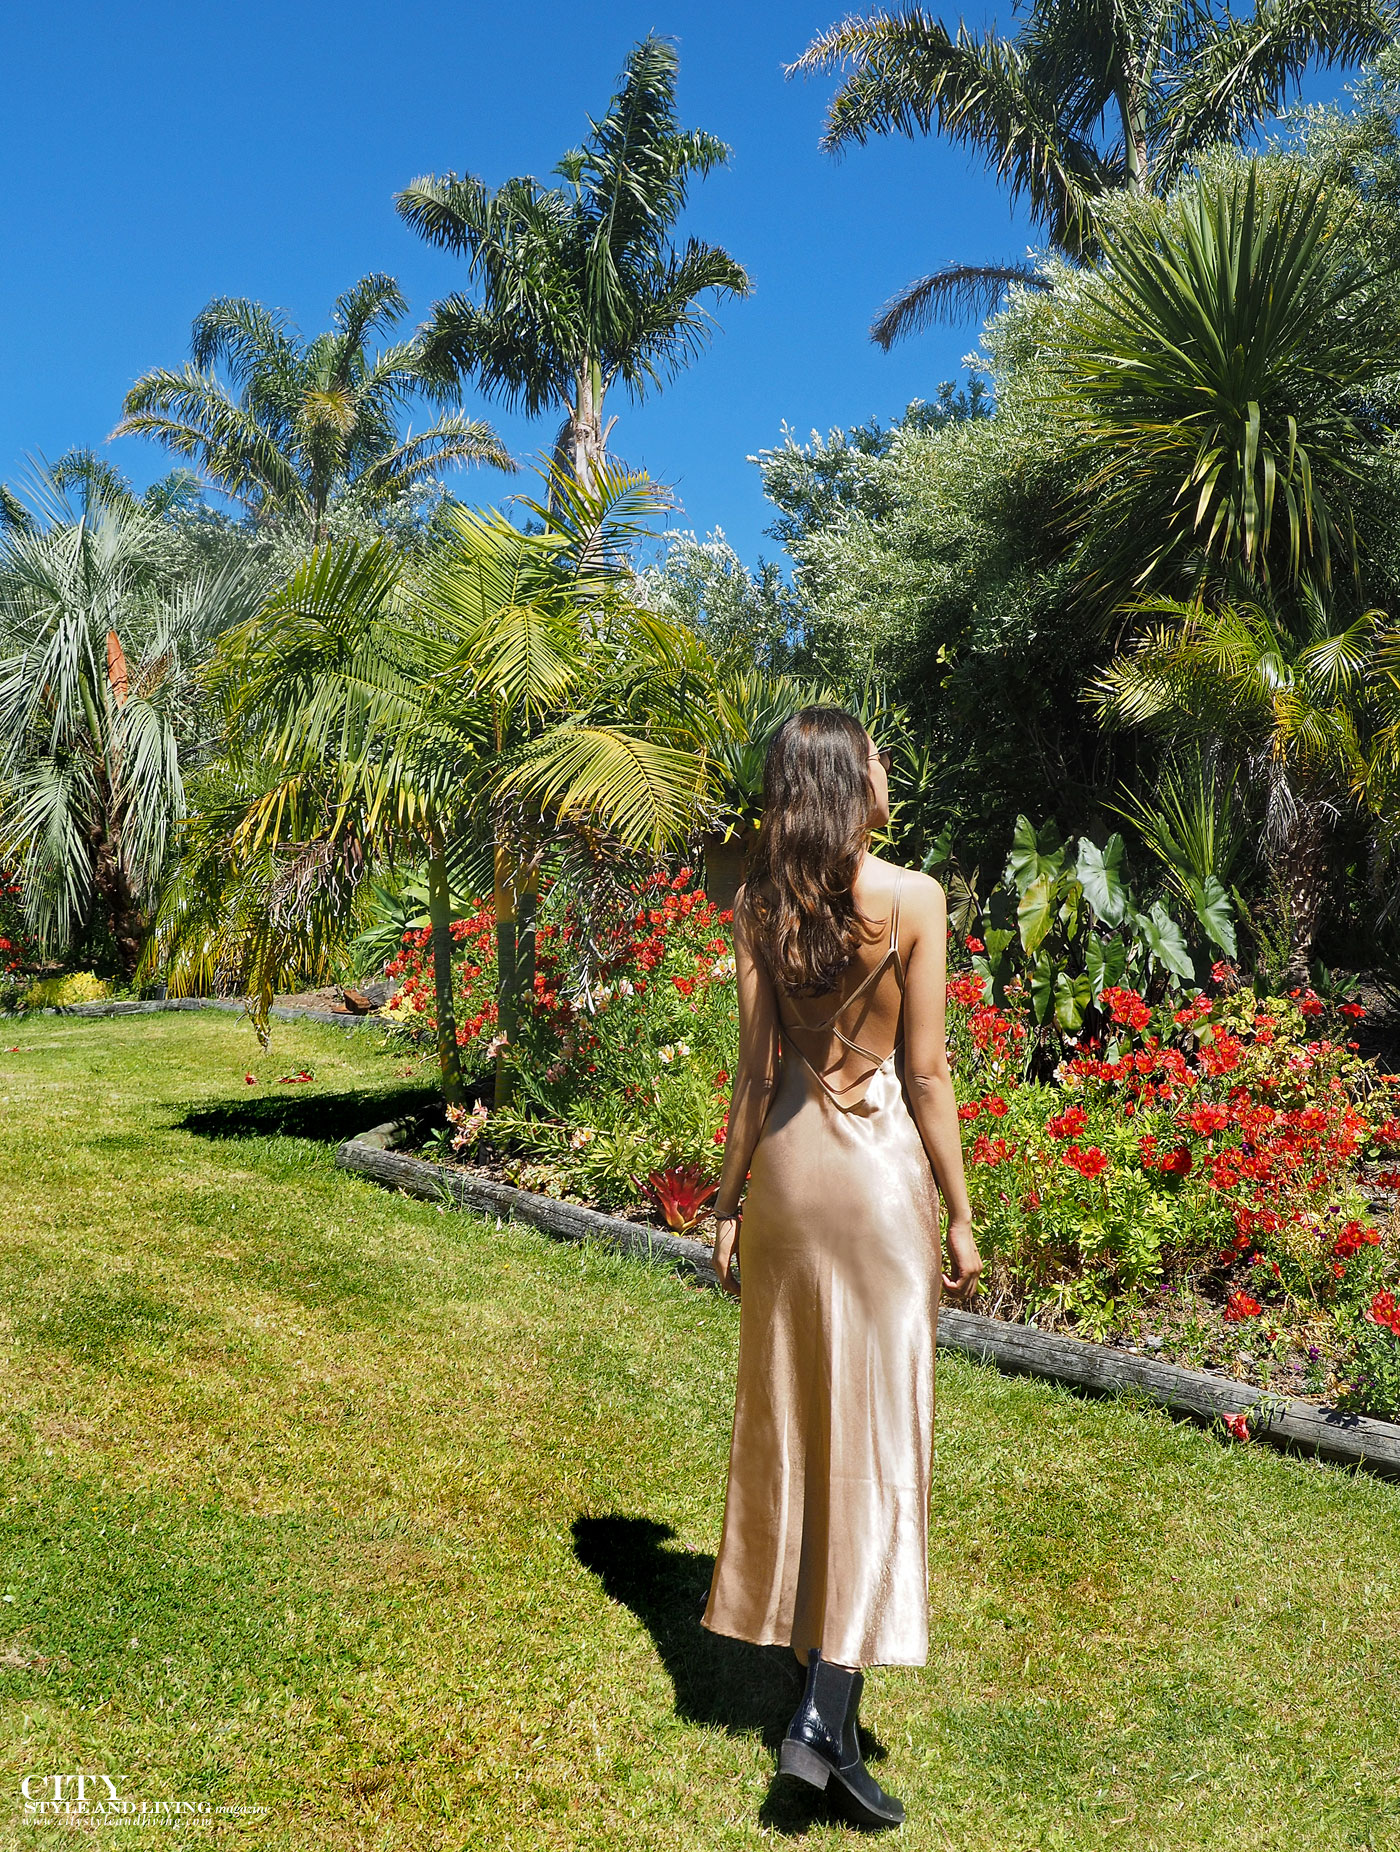 City style and living magazine Editors Notebook style fashion blogger Shivana M Mercury Bay Winery Coromandel New Zealand Gold dress in garden back